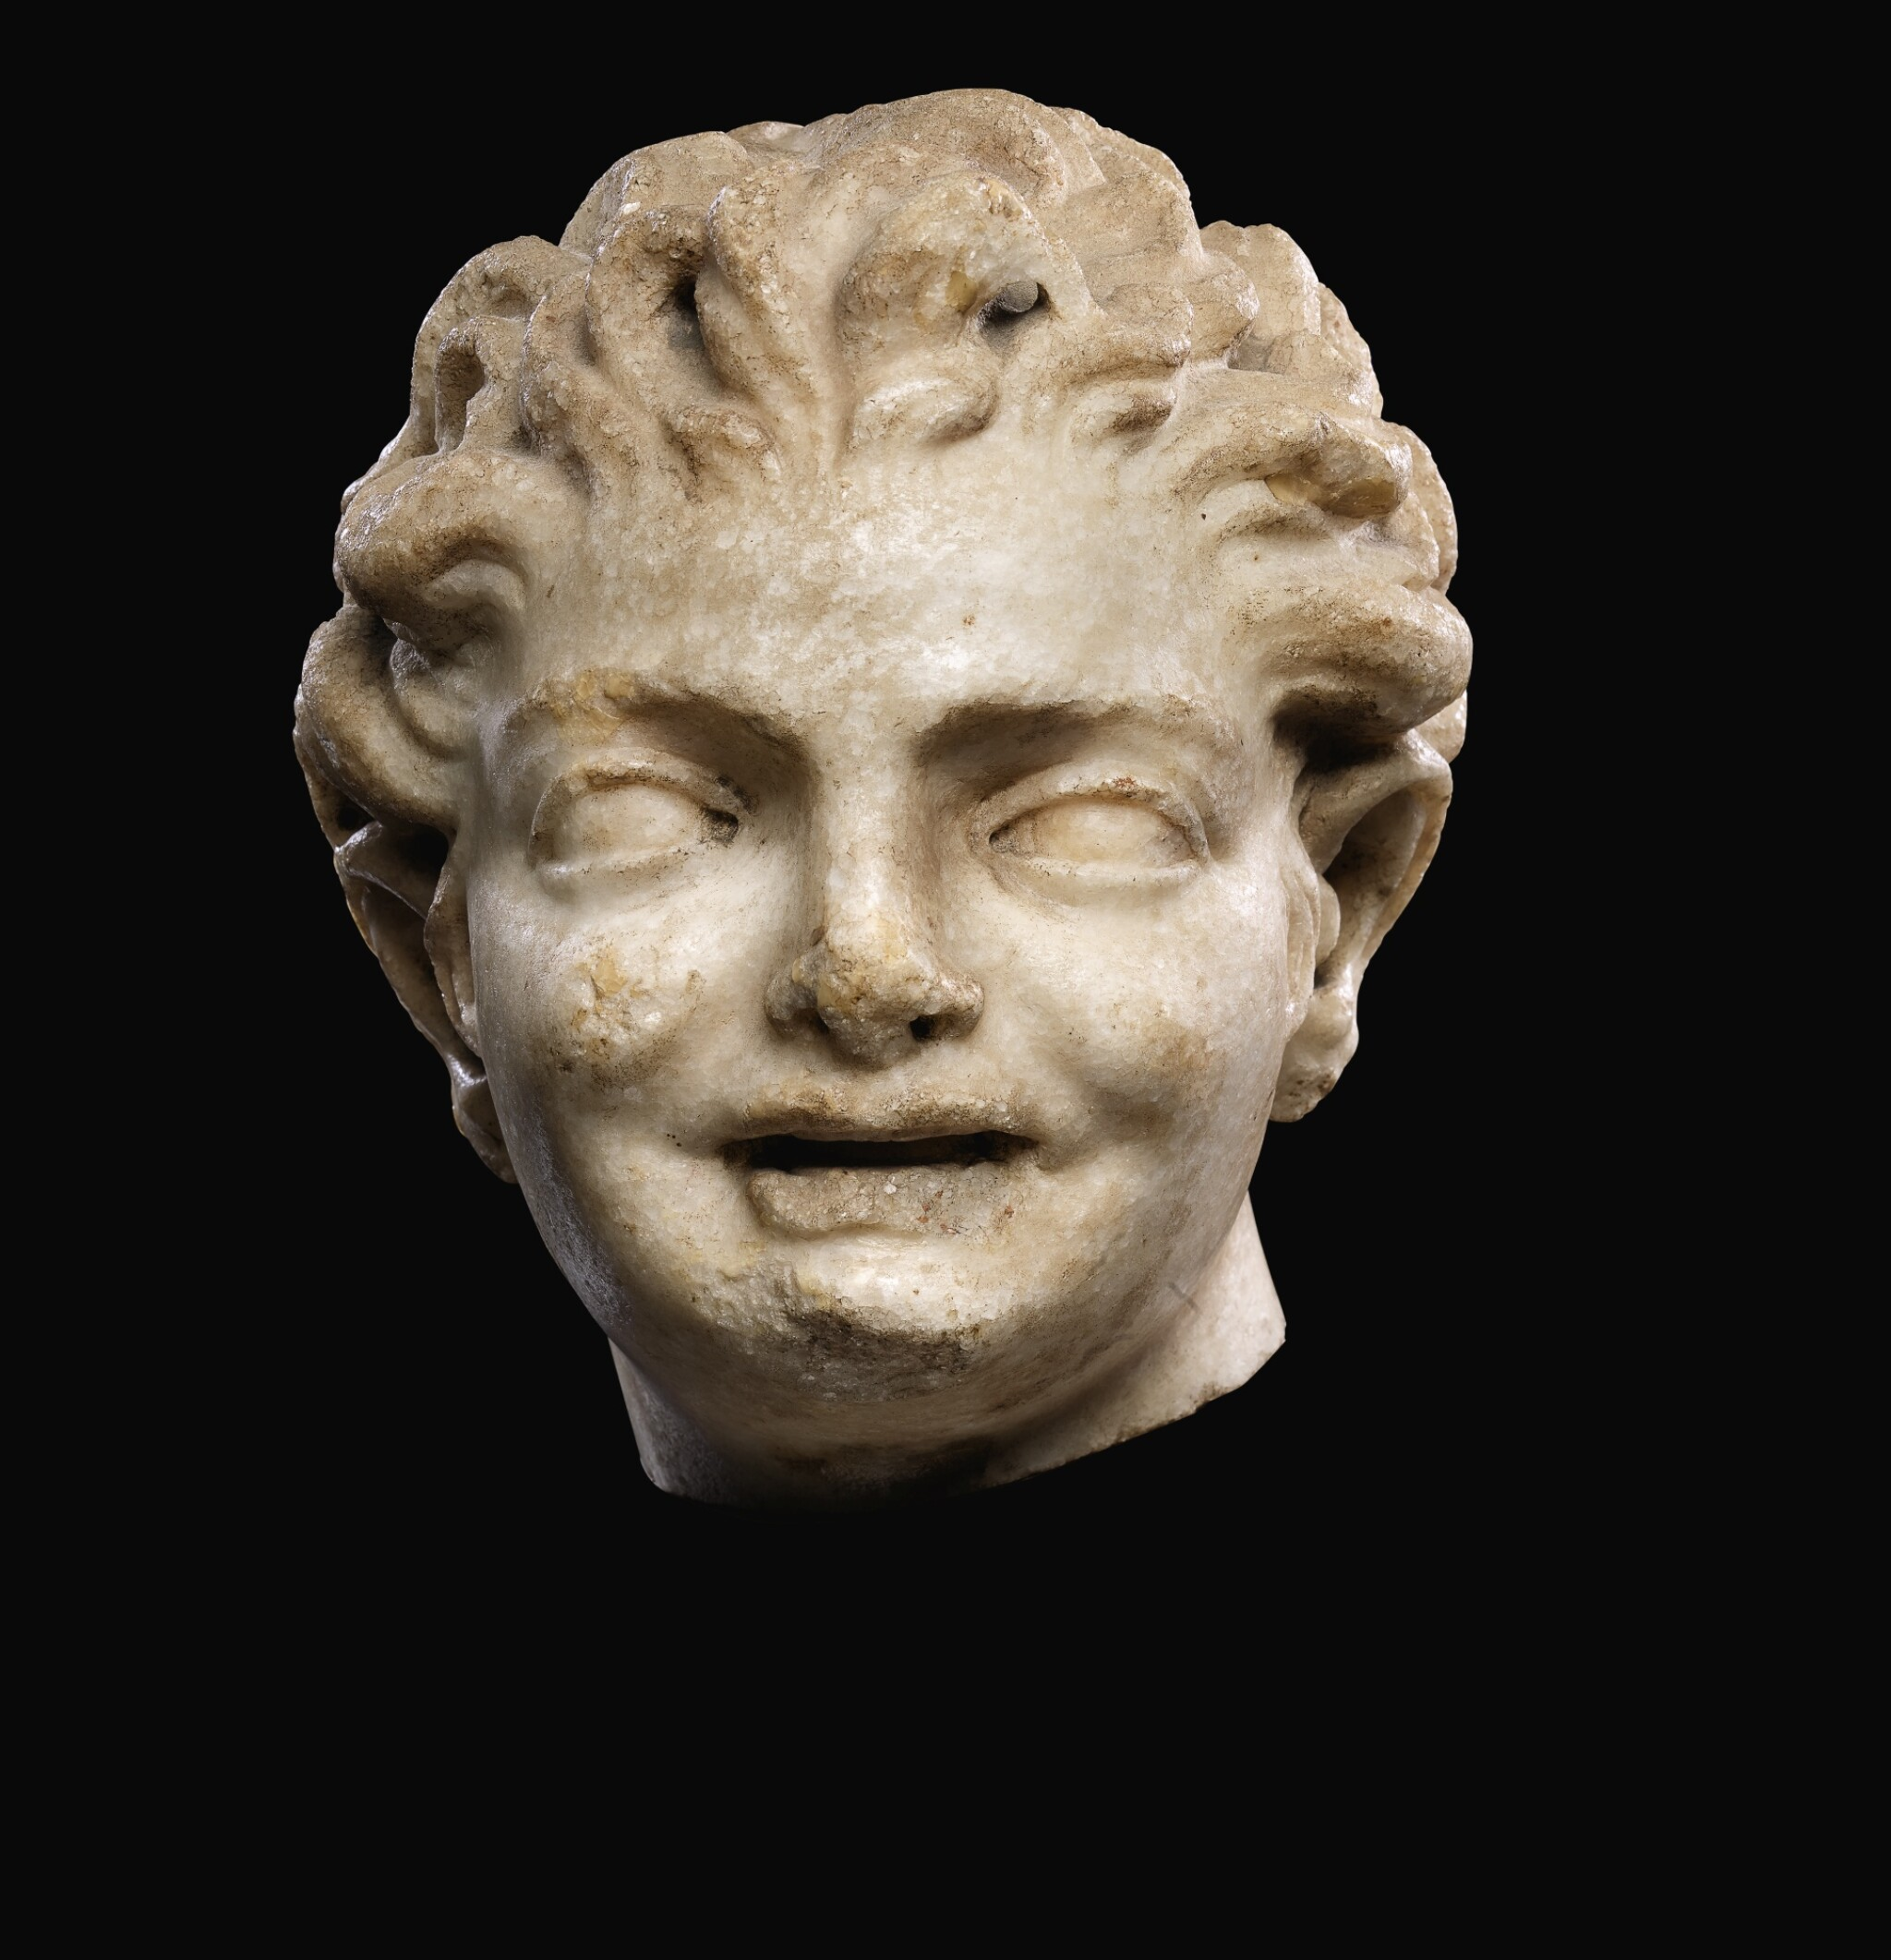 A ROMAN MARBLE HEAD OF A BOY, CIRCA 2ND CENTURY A.D